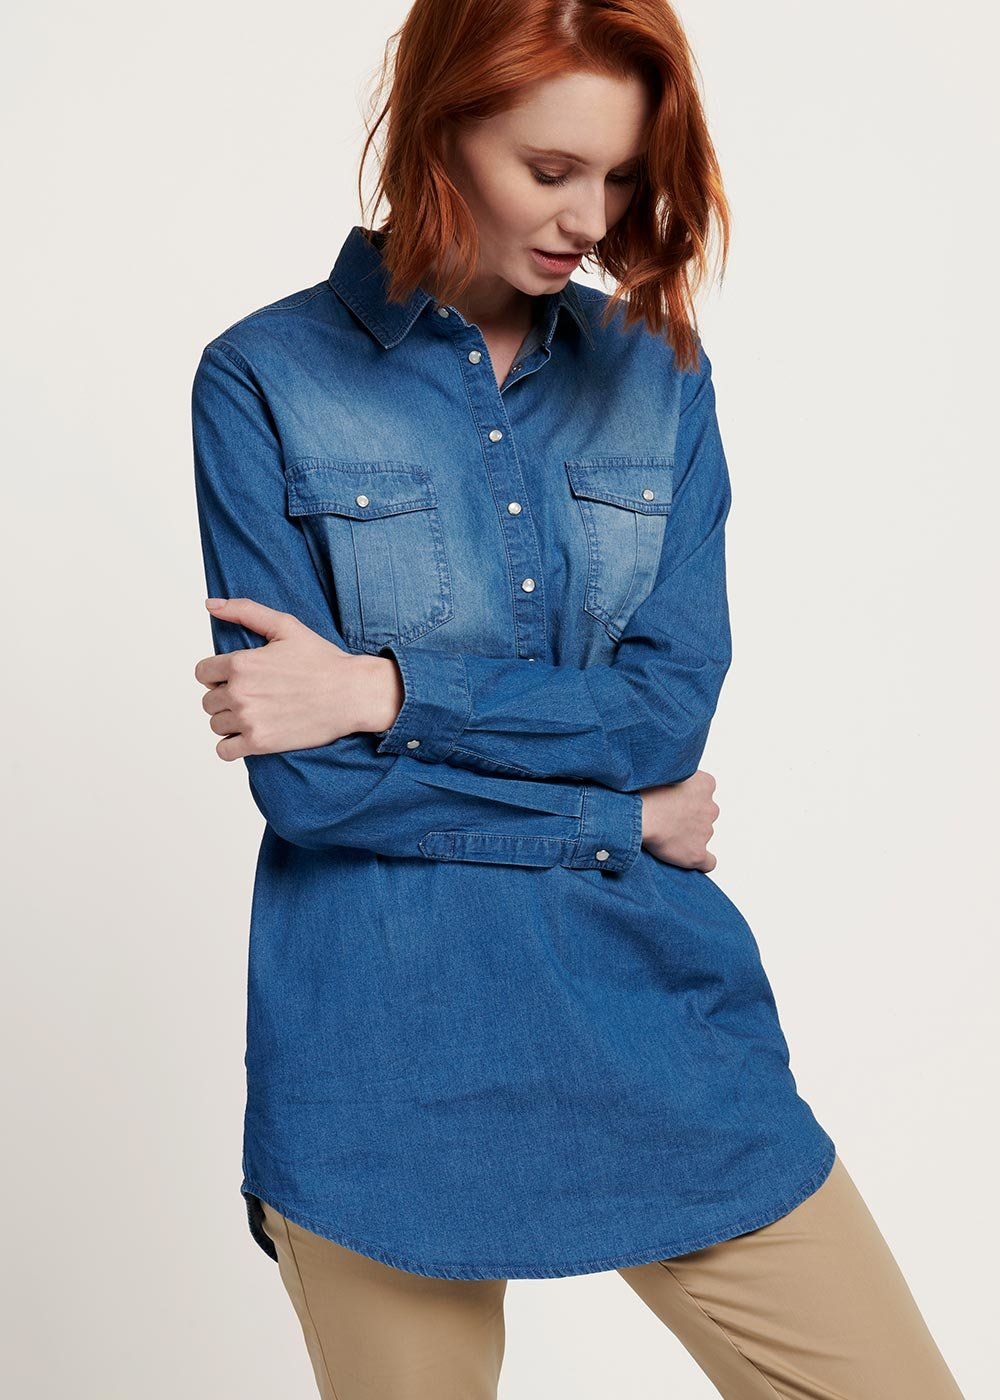 Cassy denim shirt